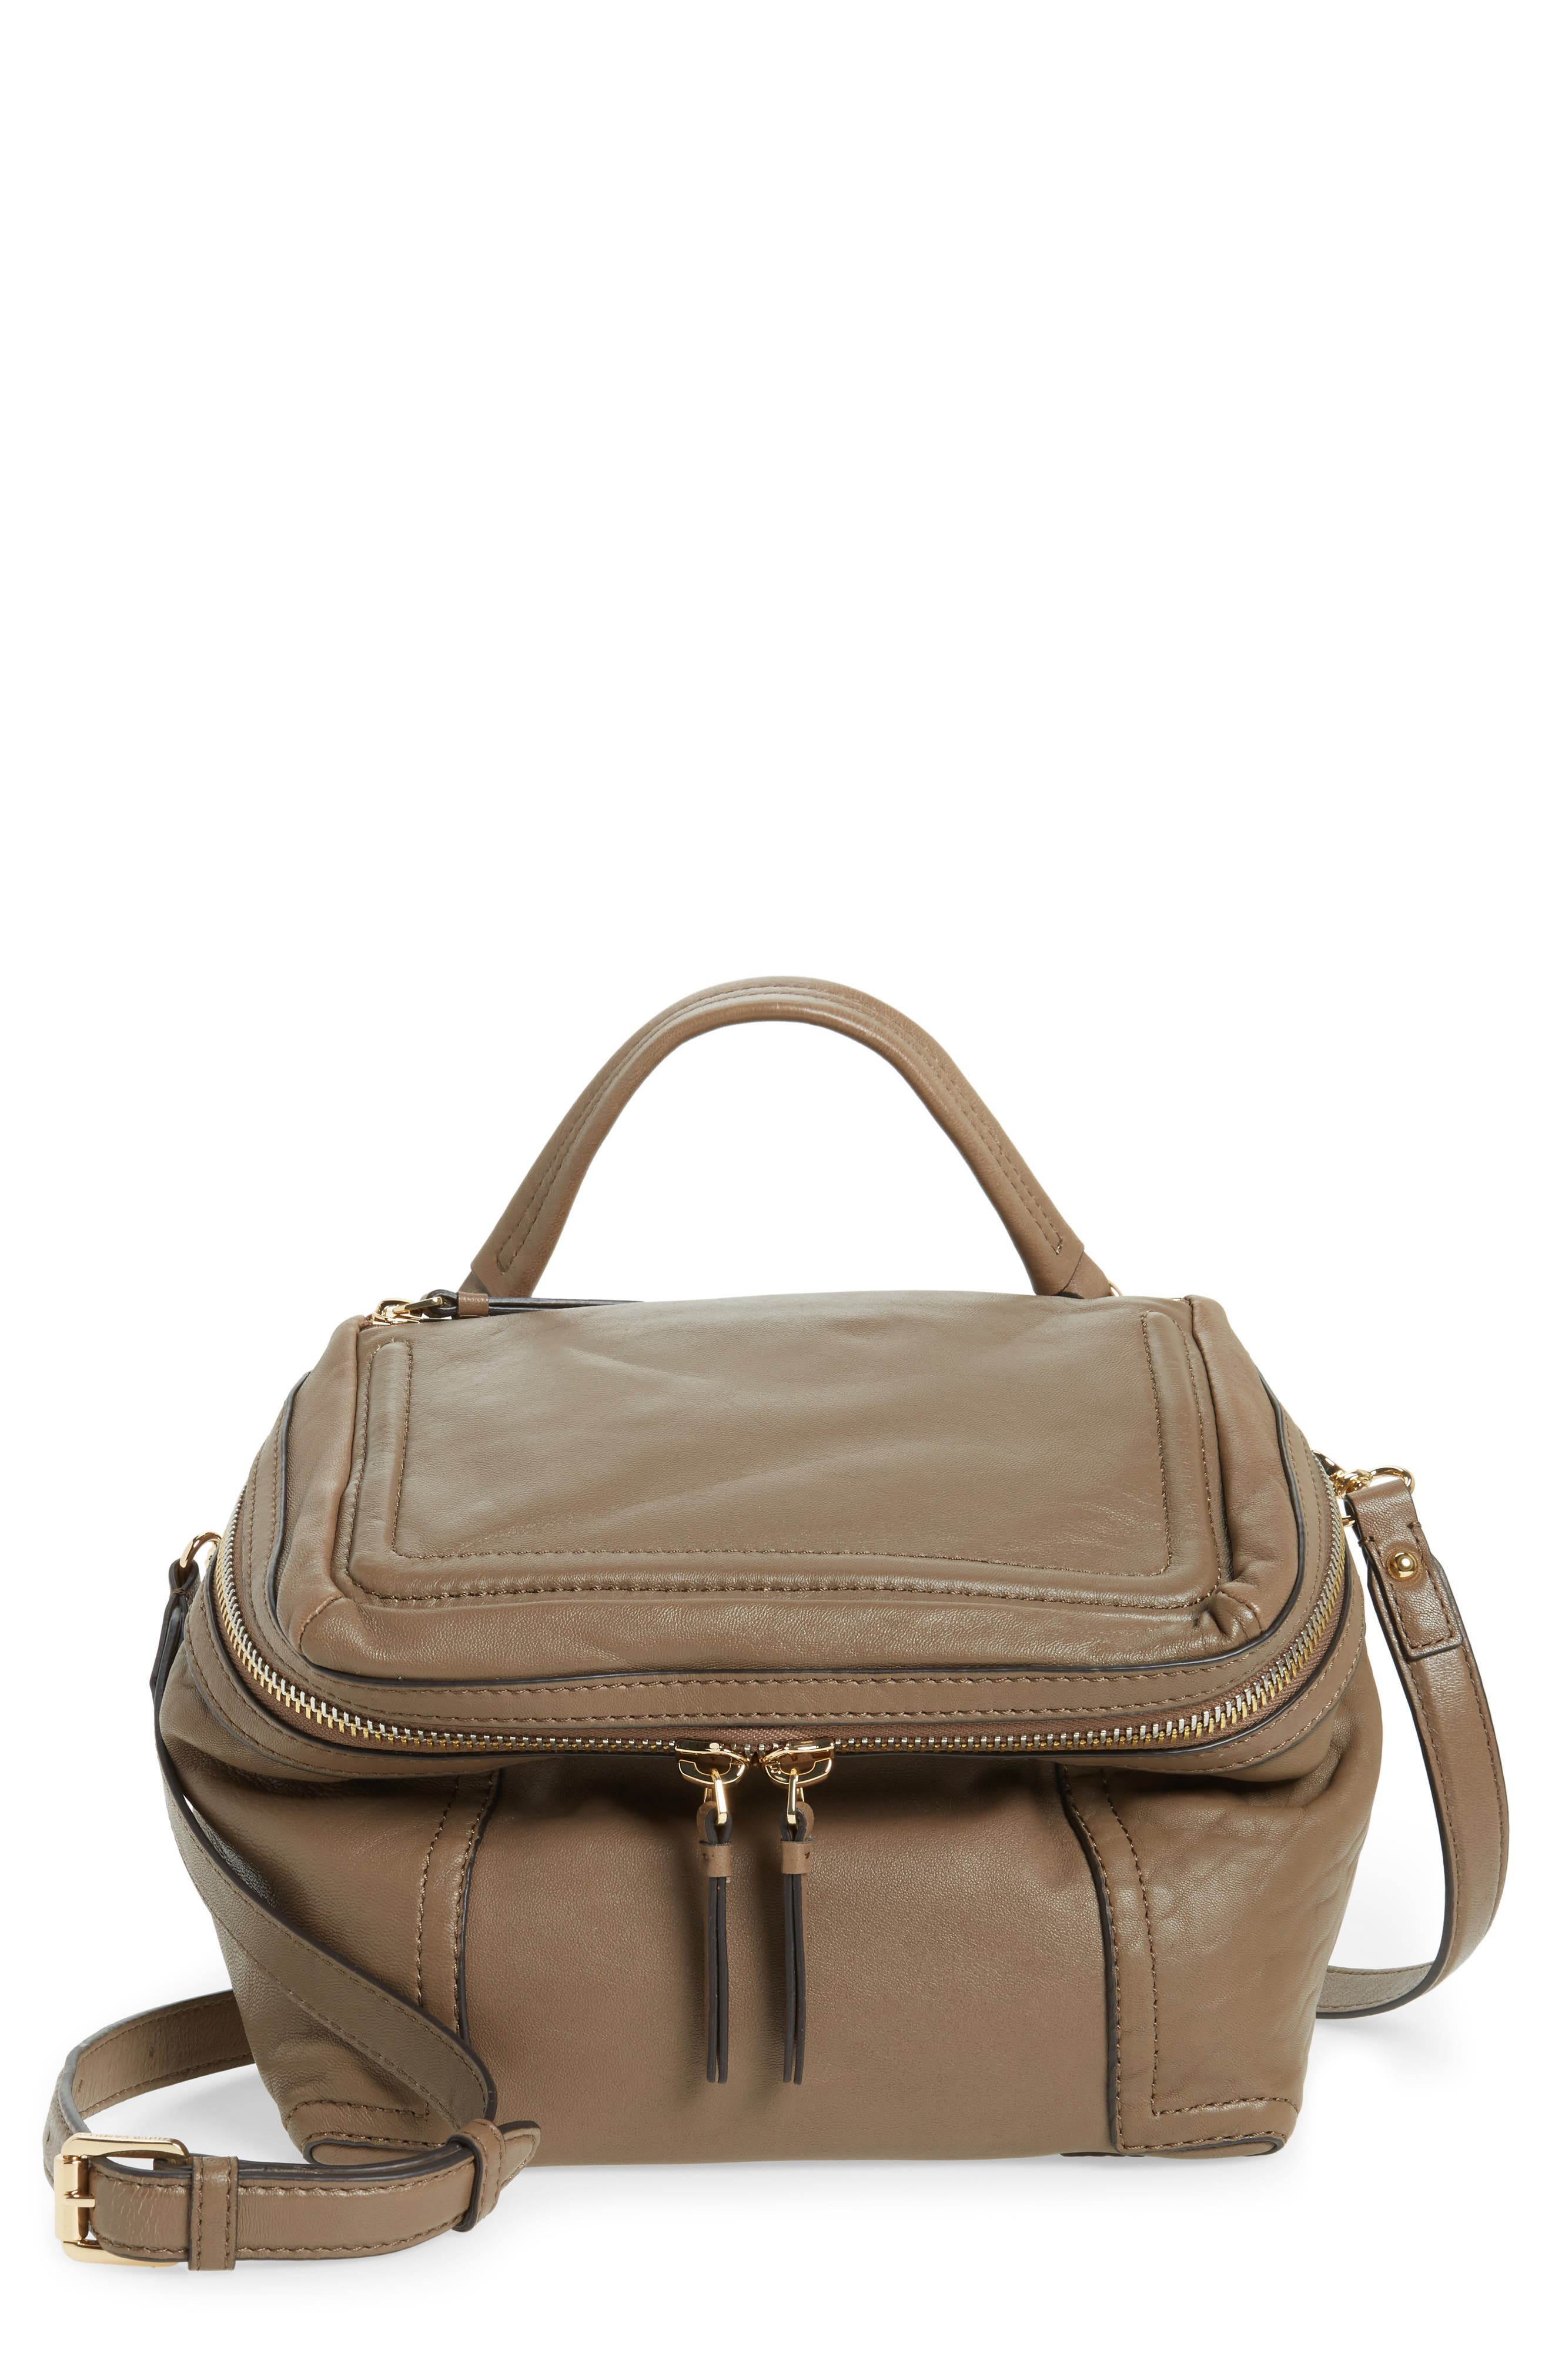 Alternate Image 1 Selected - Vince Camuto Medium Patch Leather Crossbody Bag